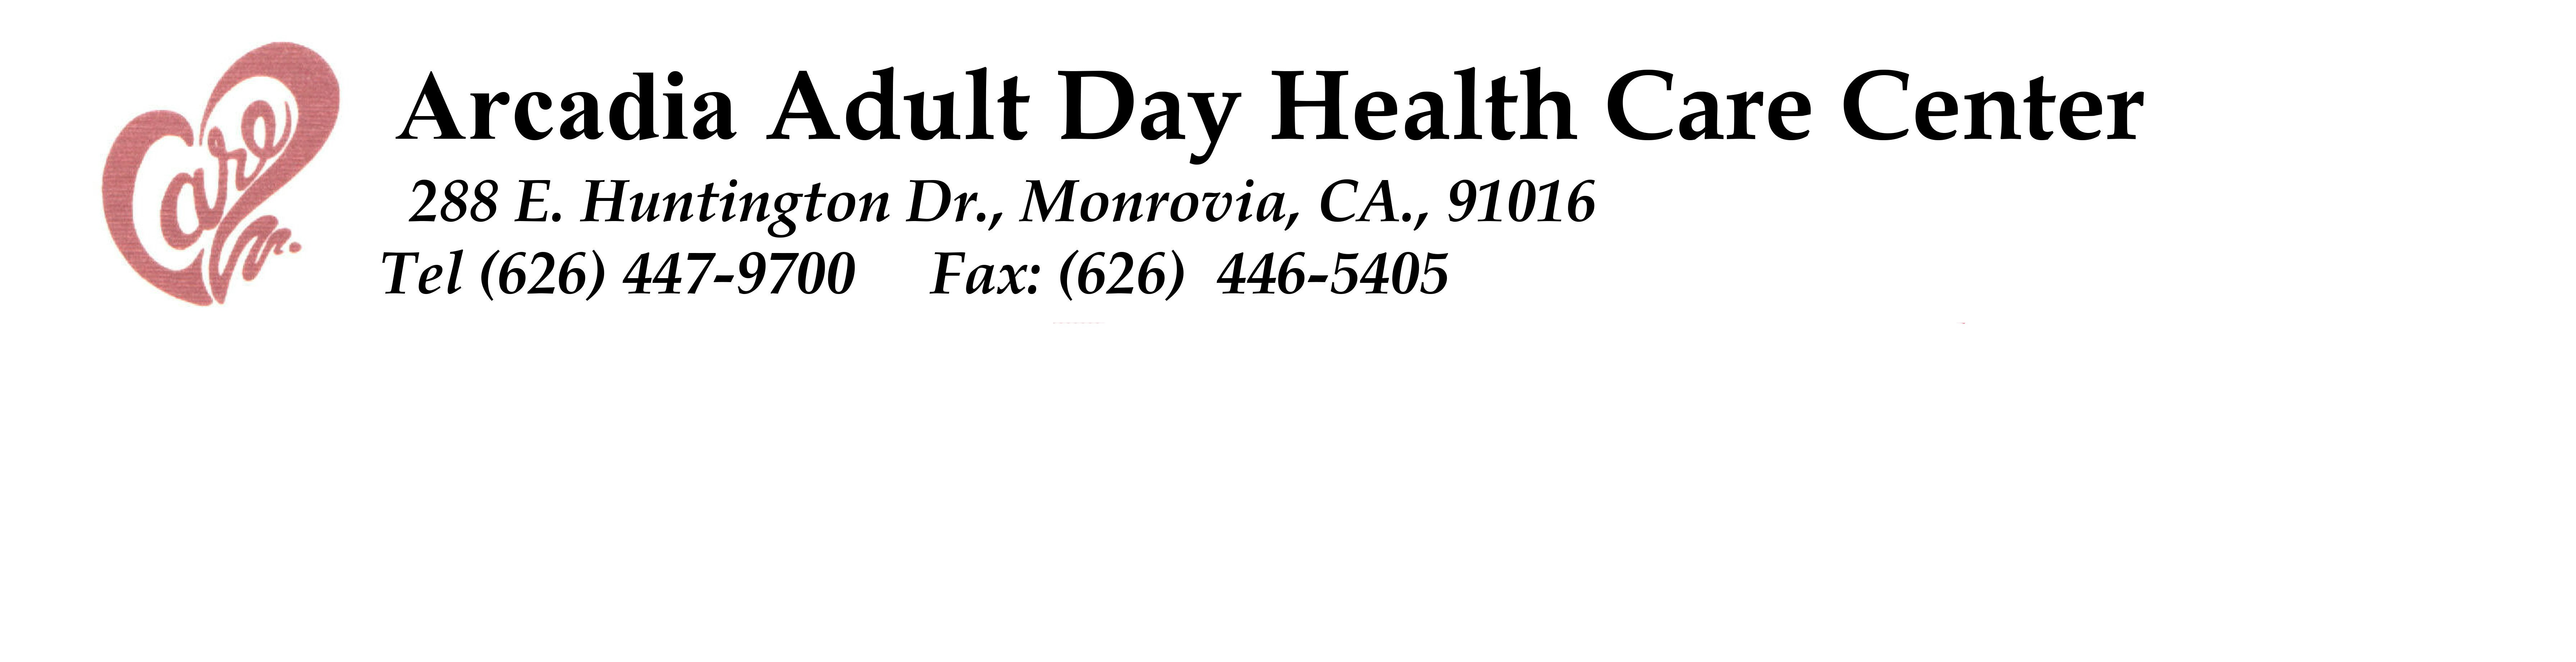 Arcadia Adult Day Health Care  Center